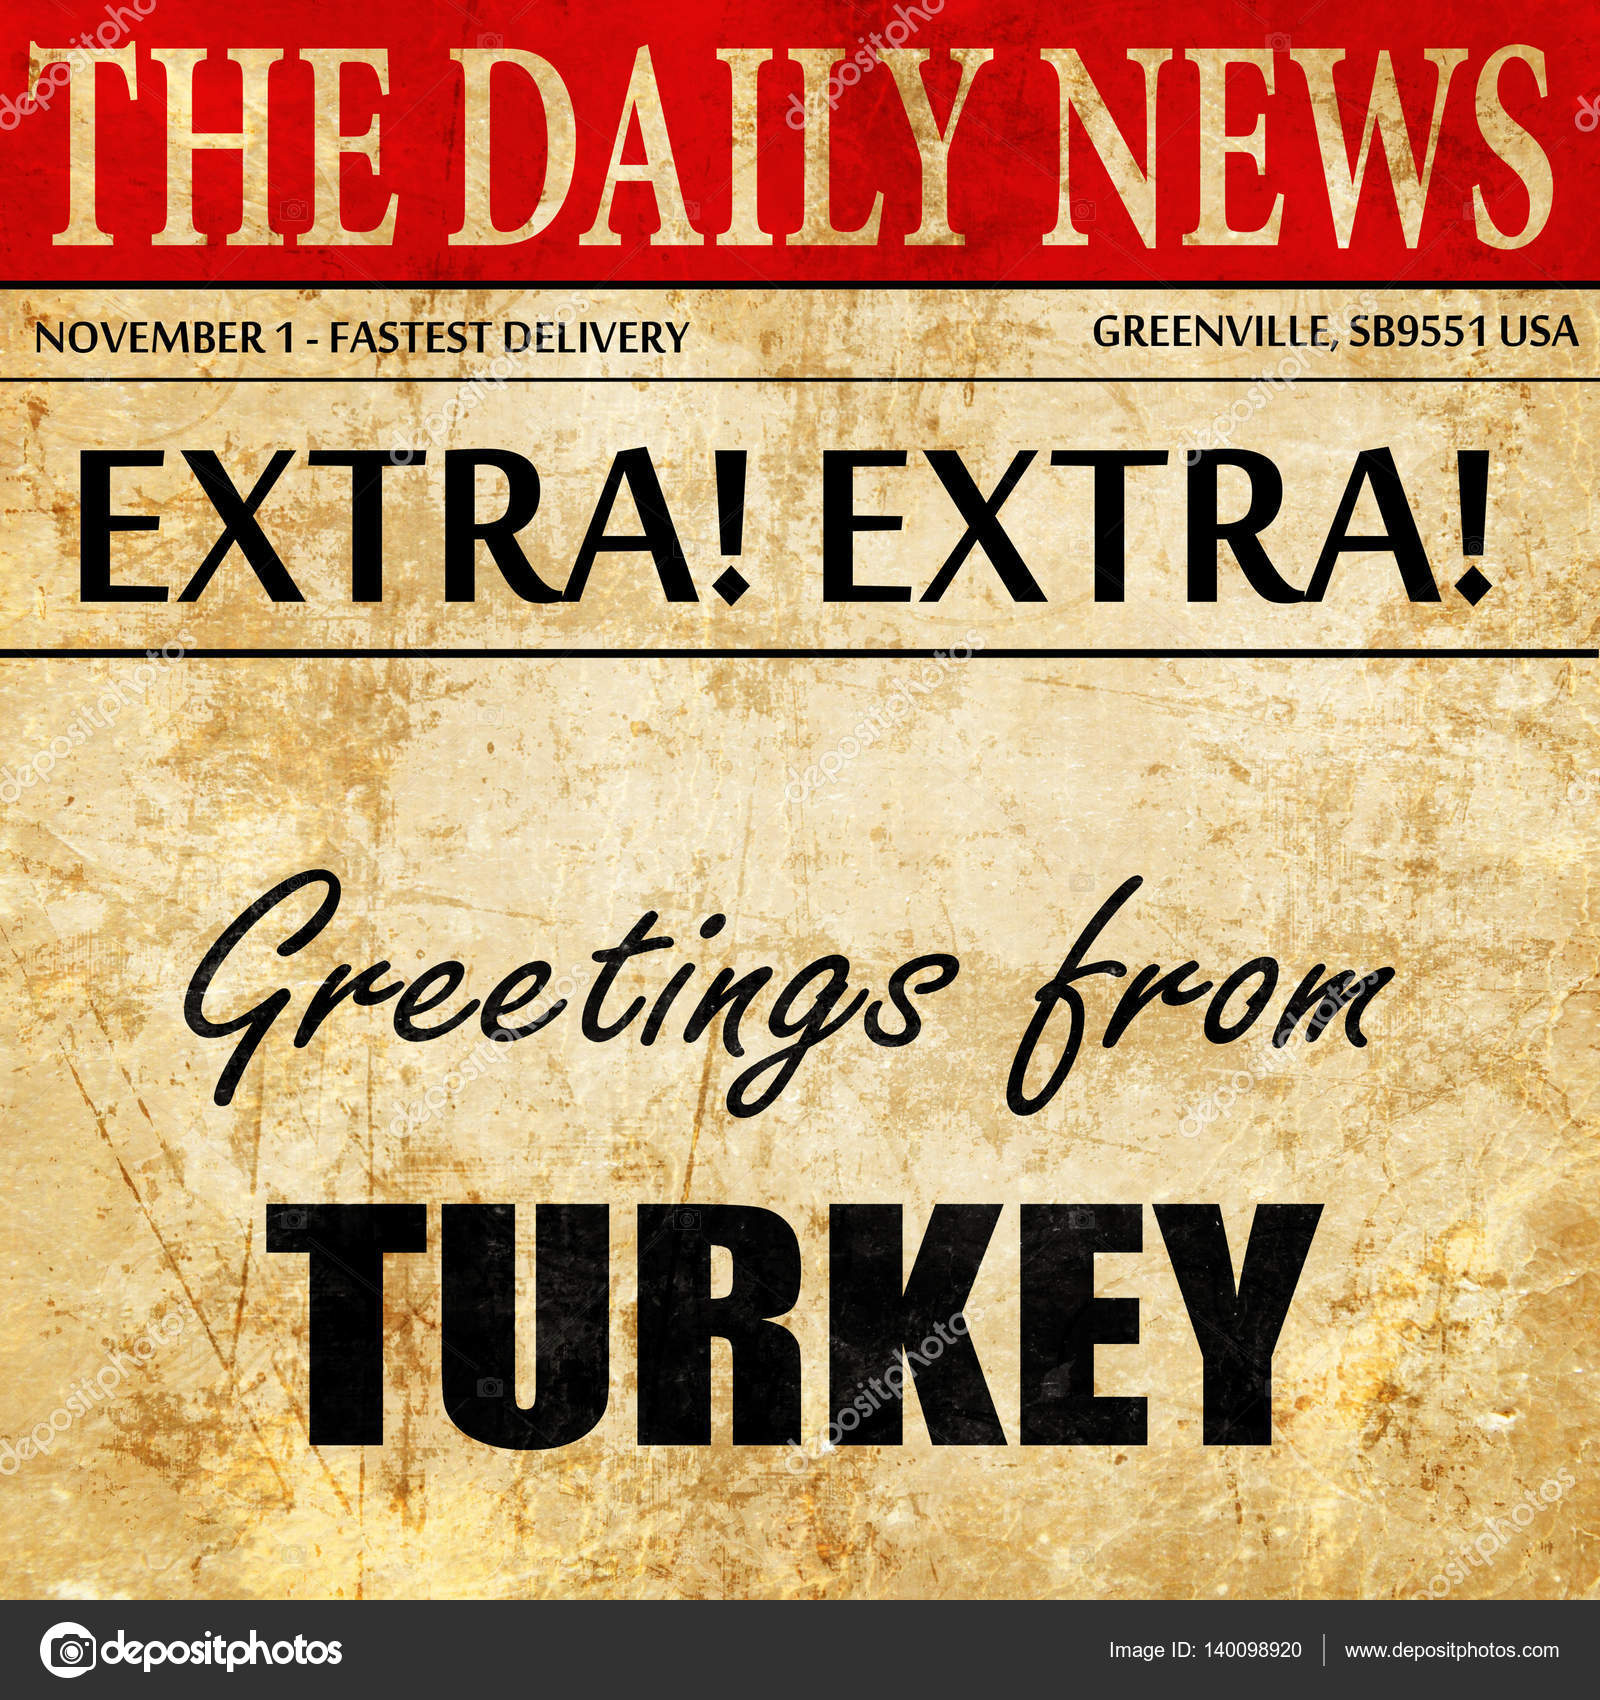 Greetings from turkey newspaper article text stock photo greetings from turkey newspaper article text stock photo m4hsunfo